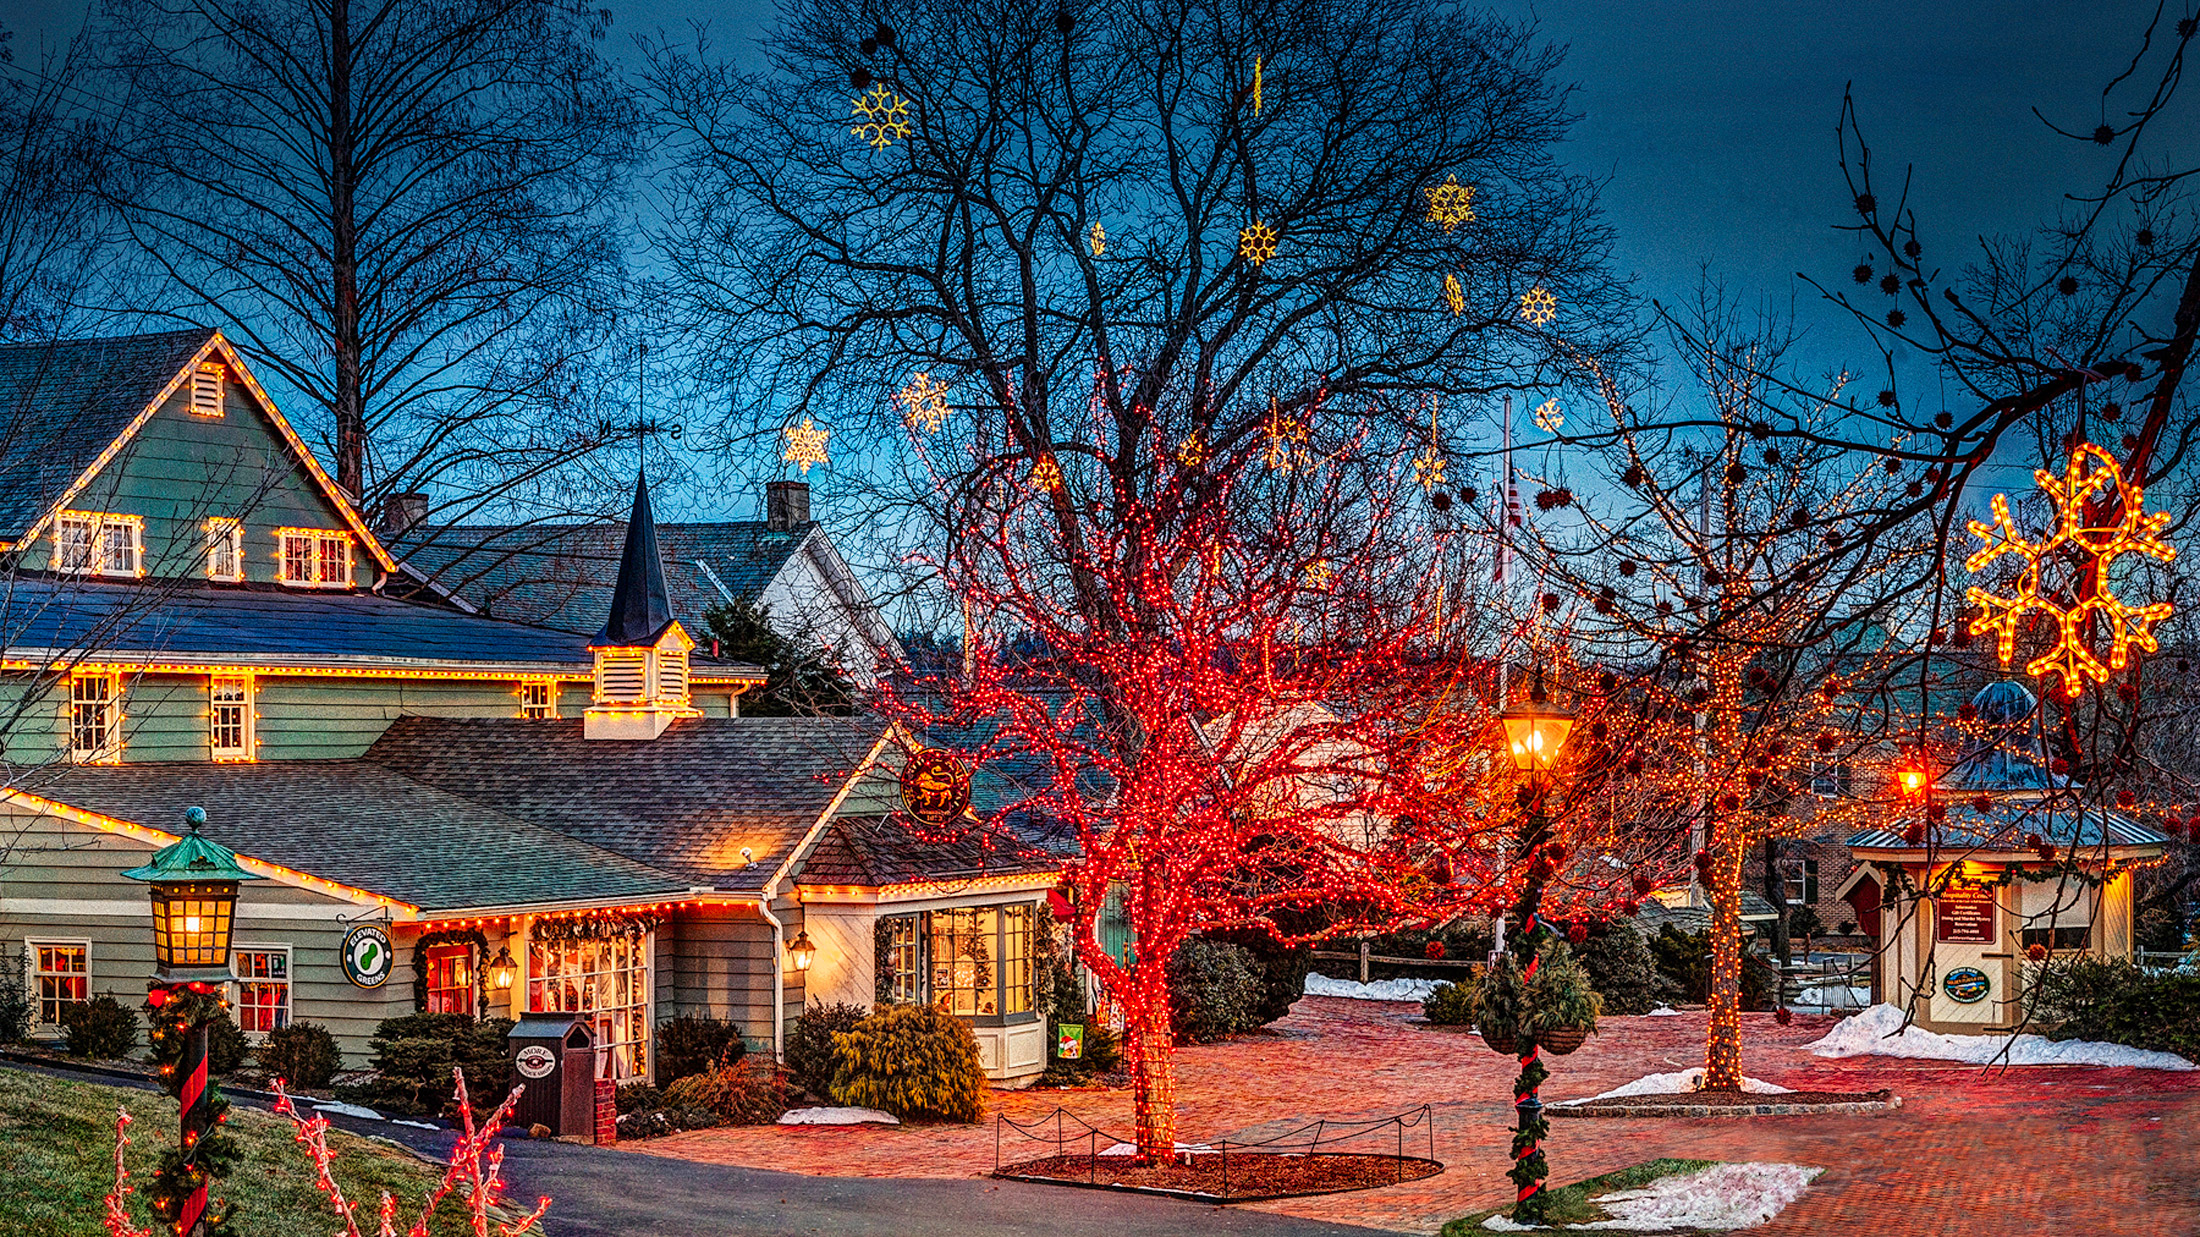 Peddlers Village Christmas 2019 Christmas in Peddler's Village — Visit Philadelphia